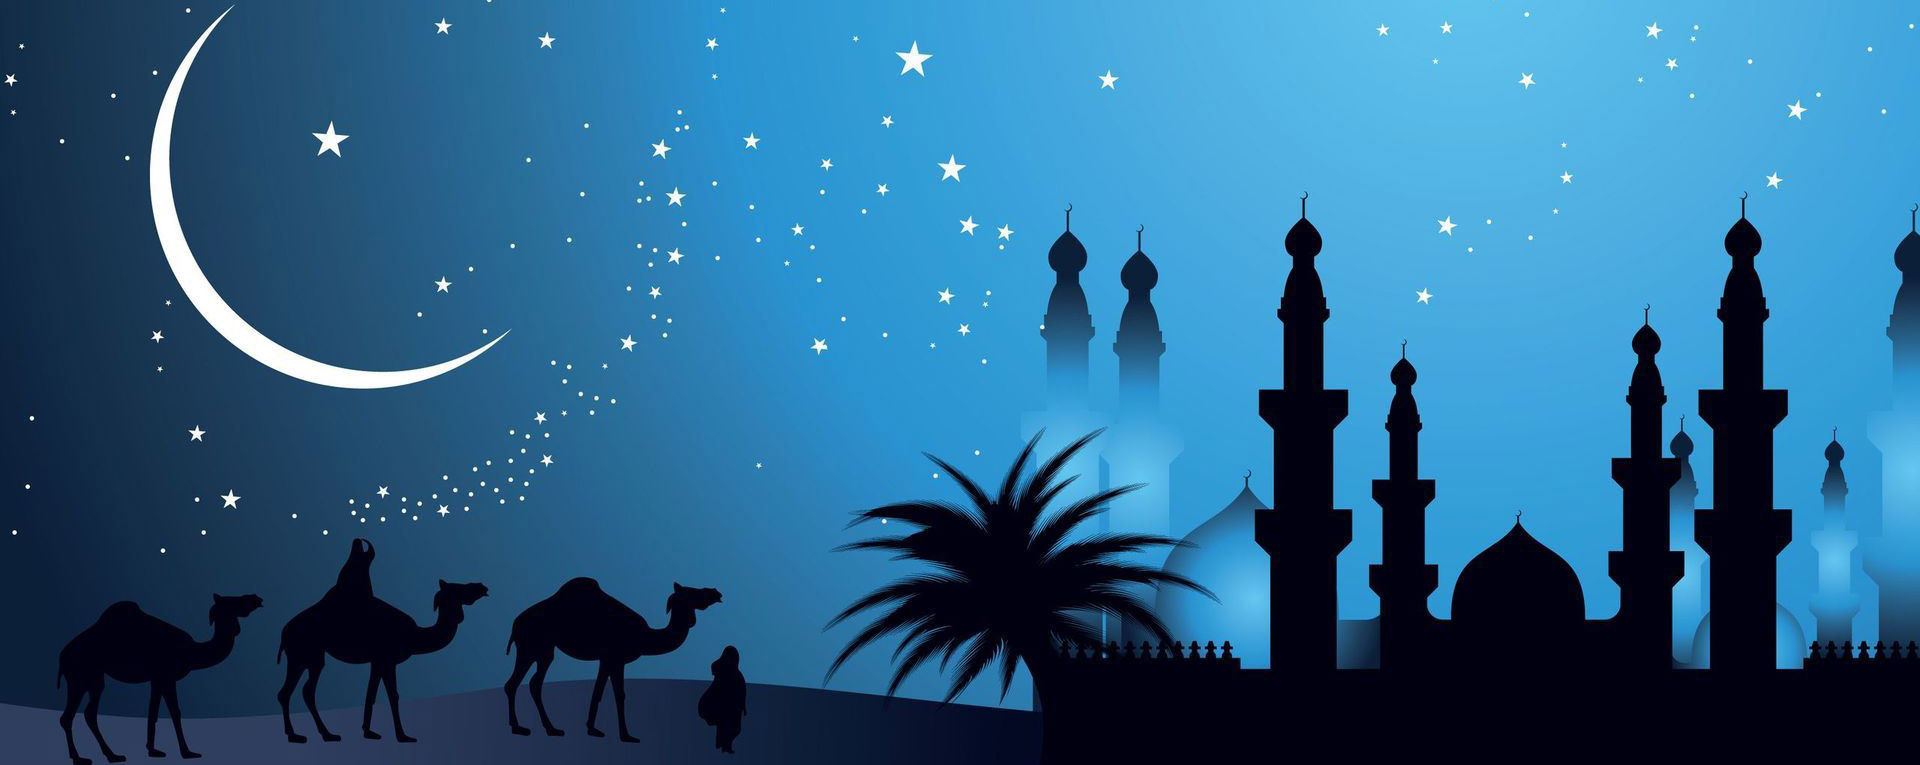 handpainted flat night  night view  camel  moon background image for free download